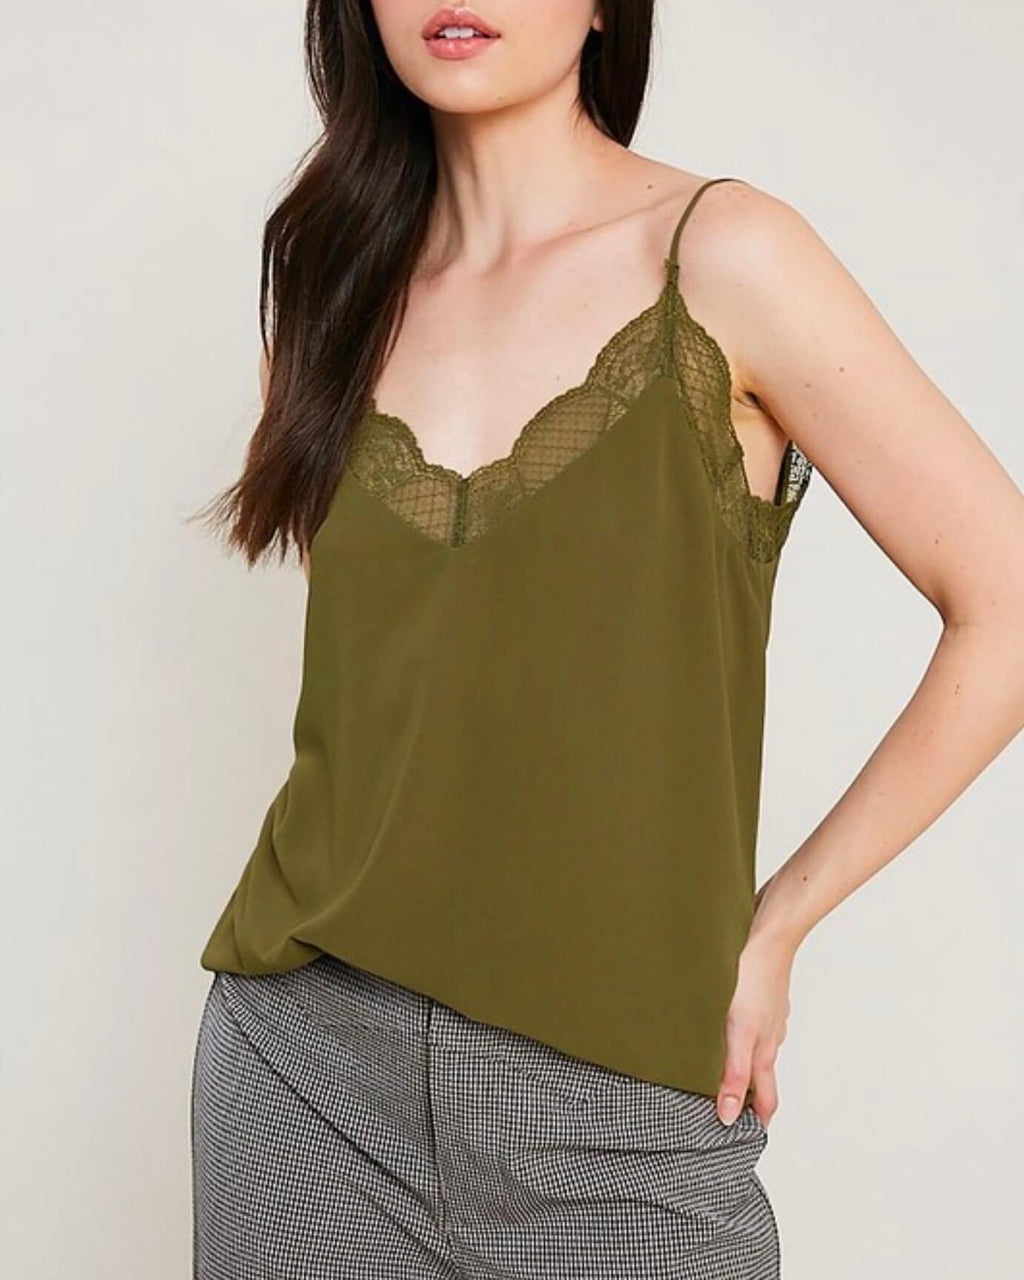 v-neck sleeveless lace trimmed camisole top - olive